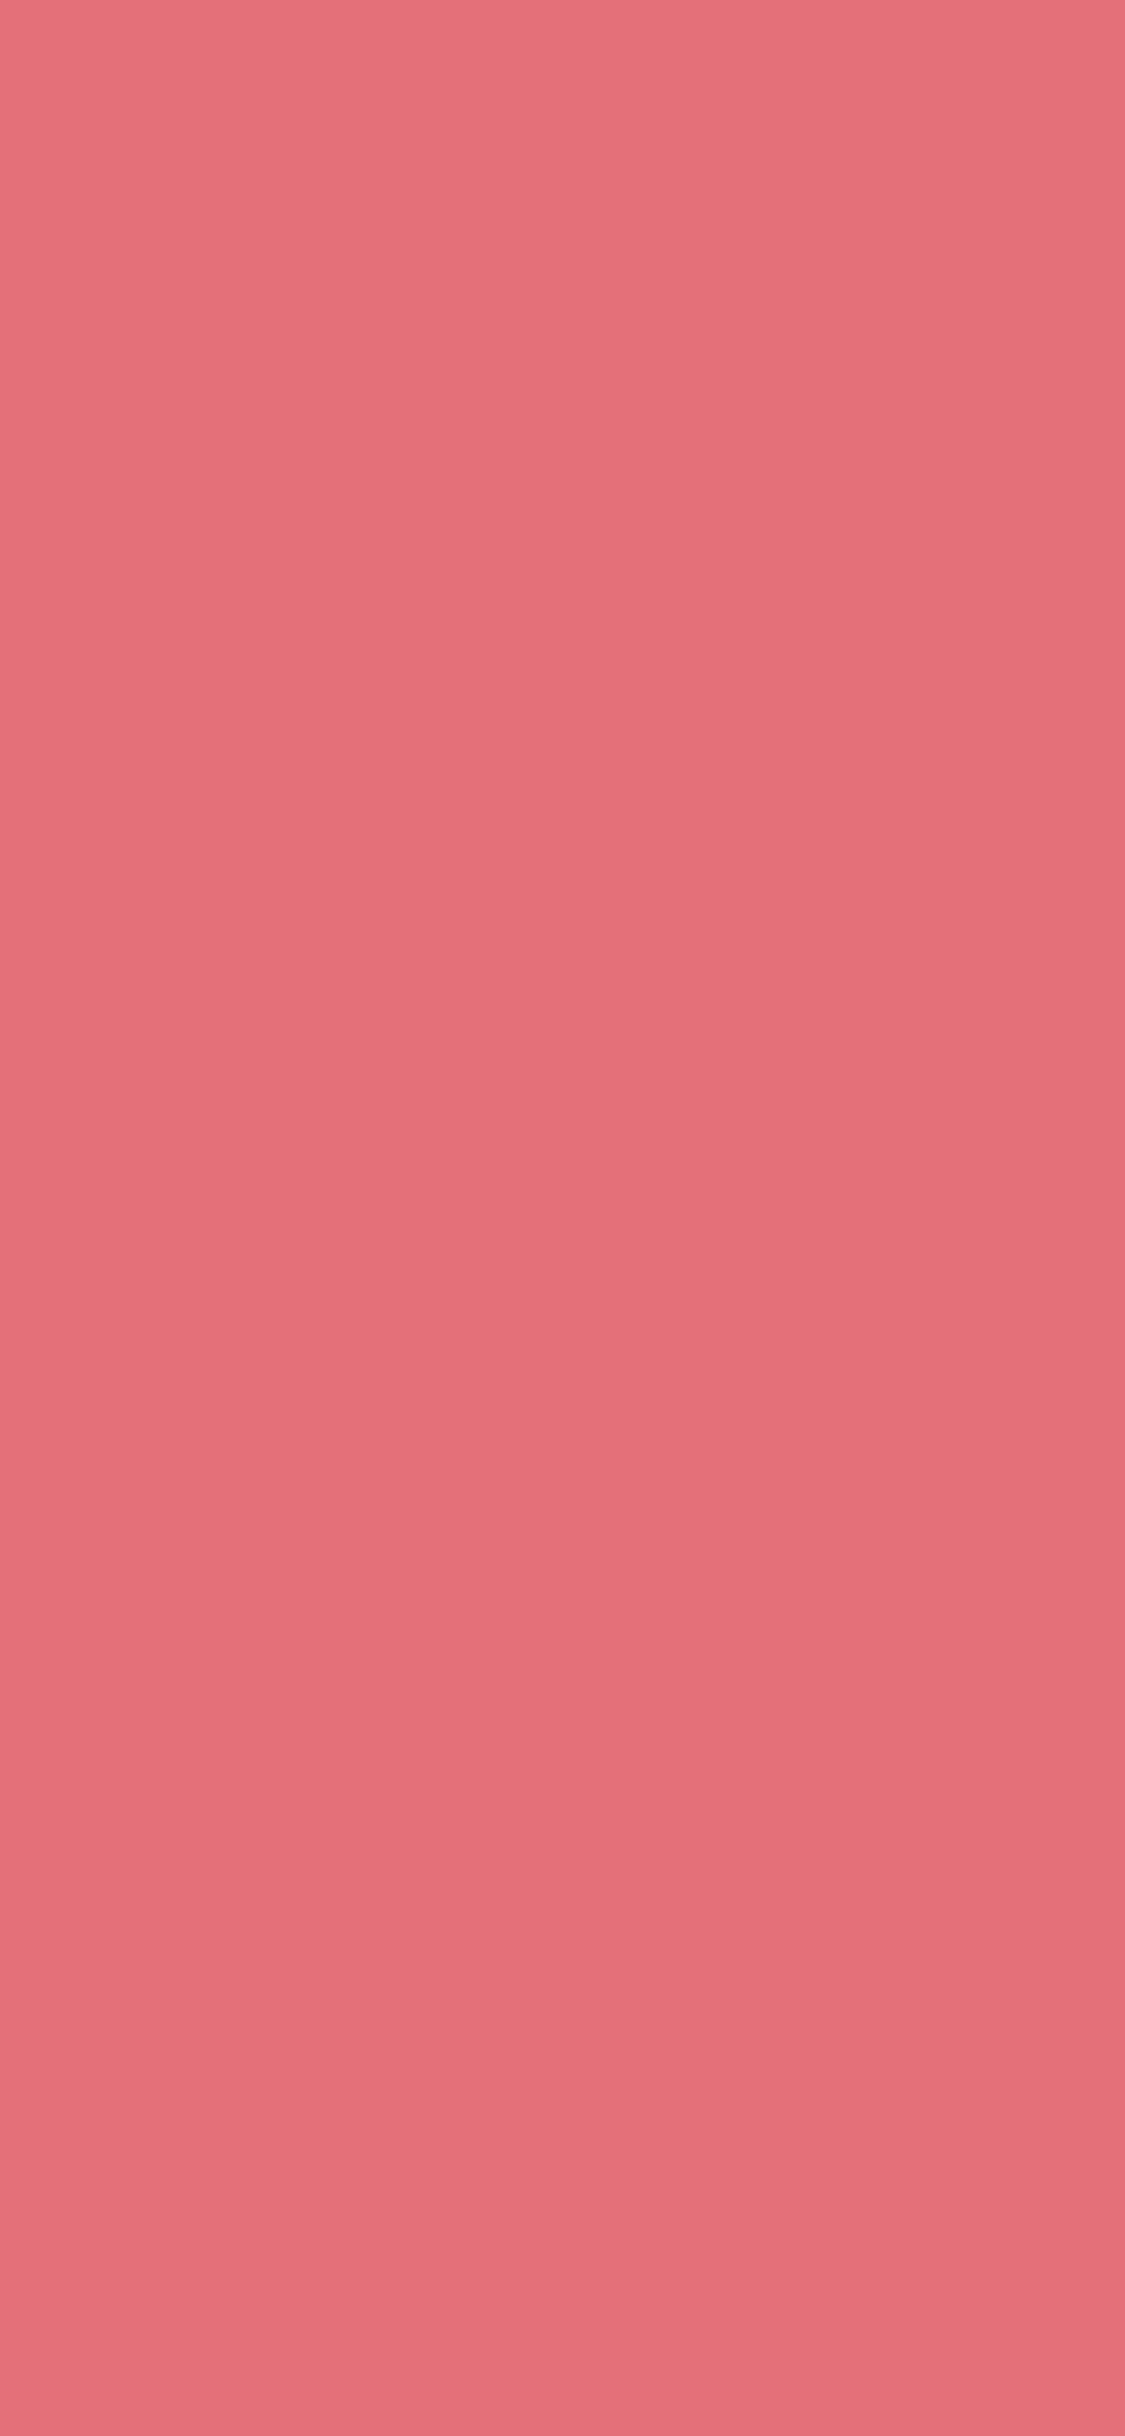 1125x2436 Tango Pink Solid Color Background